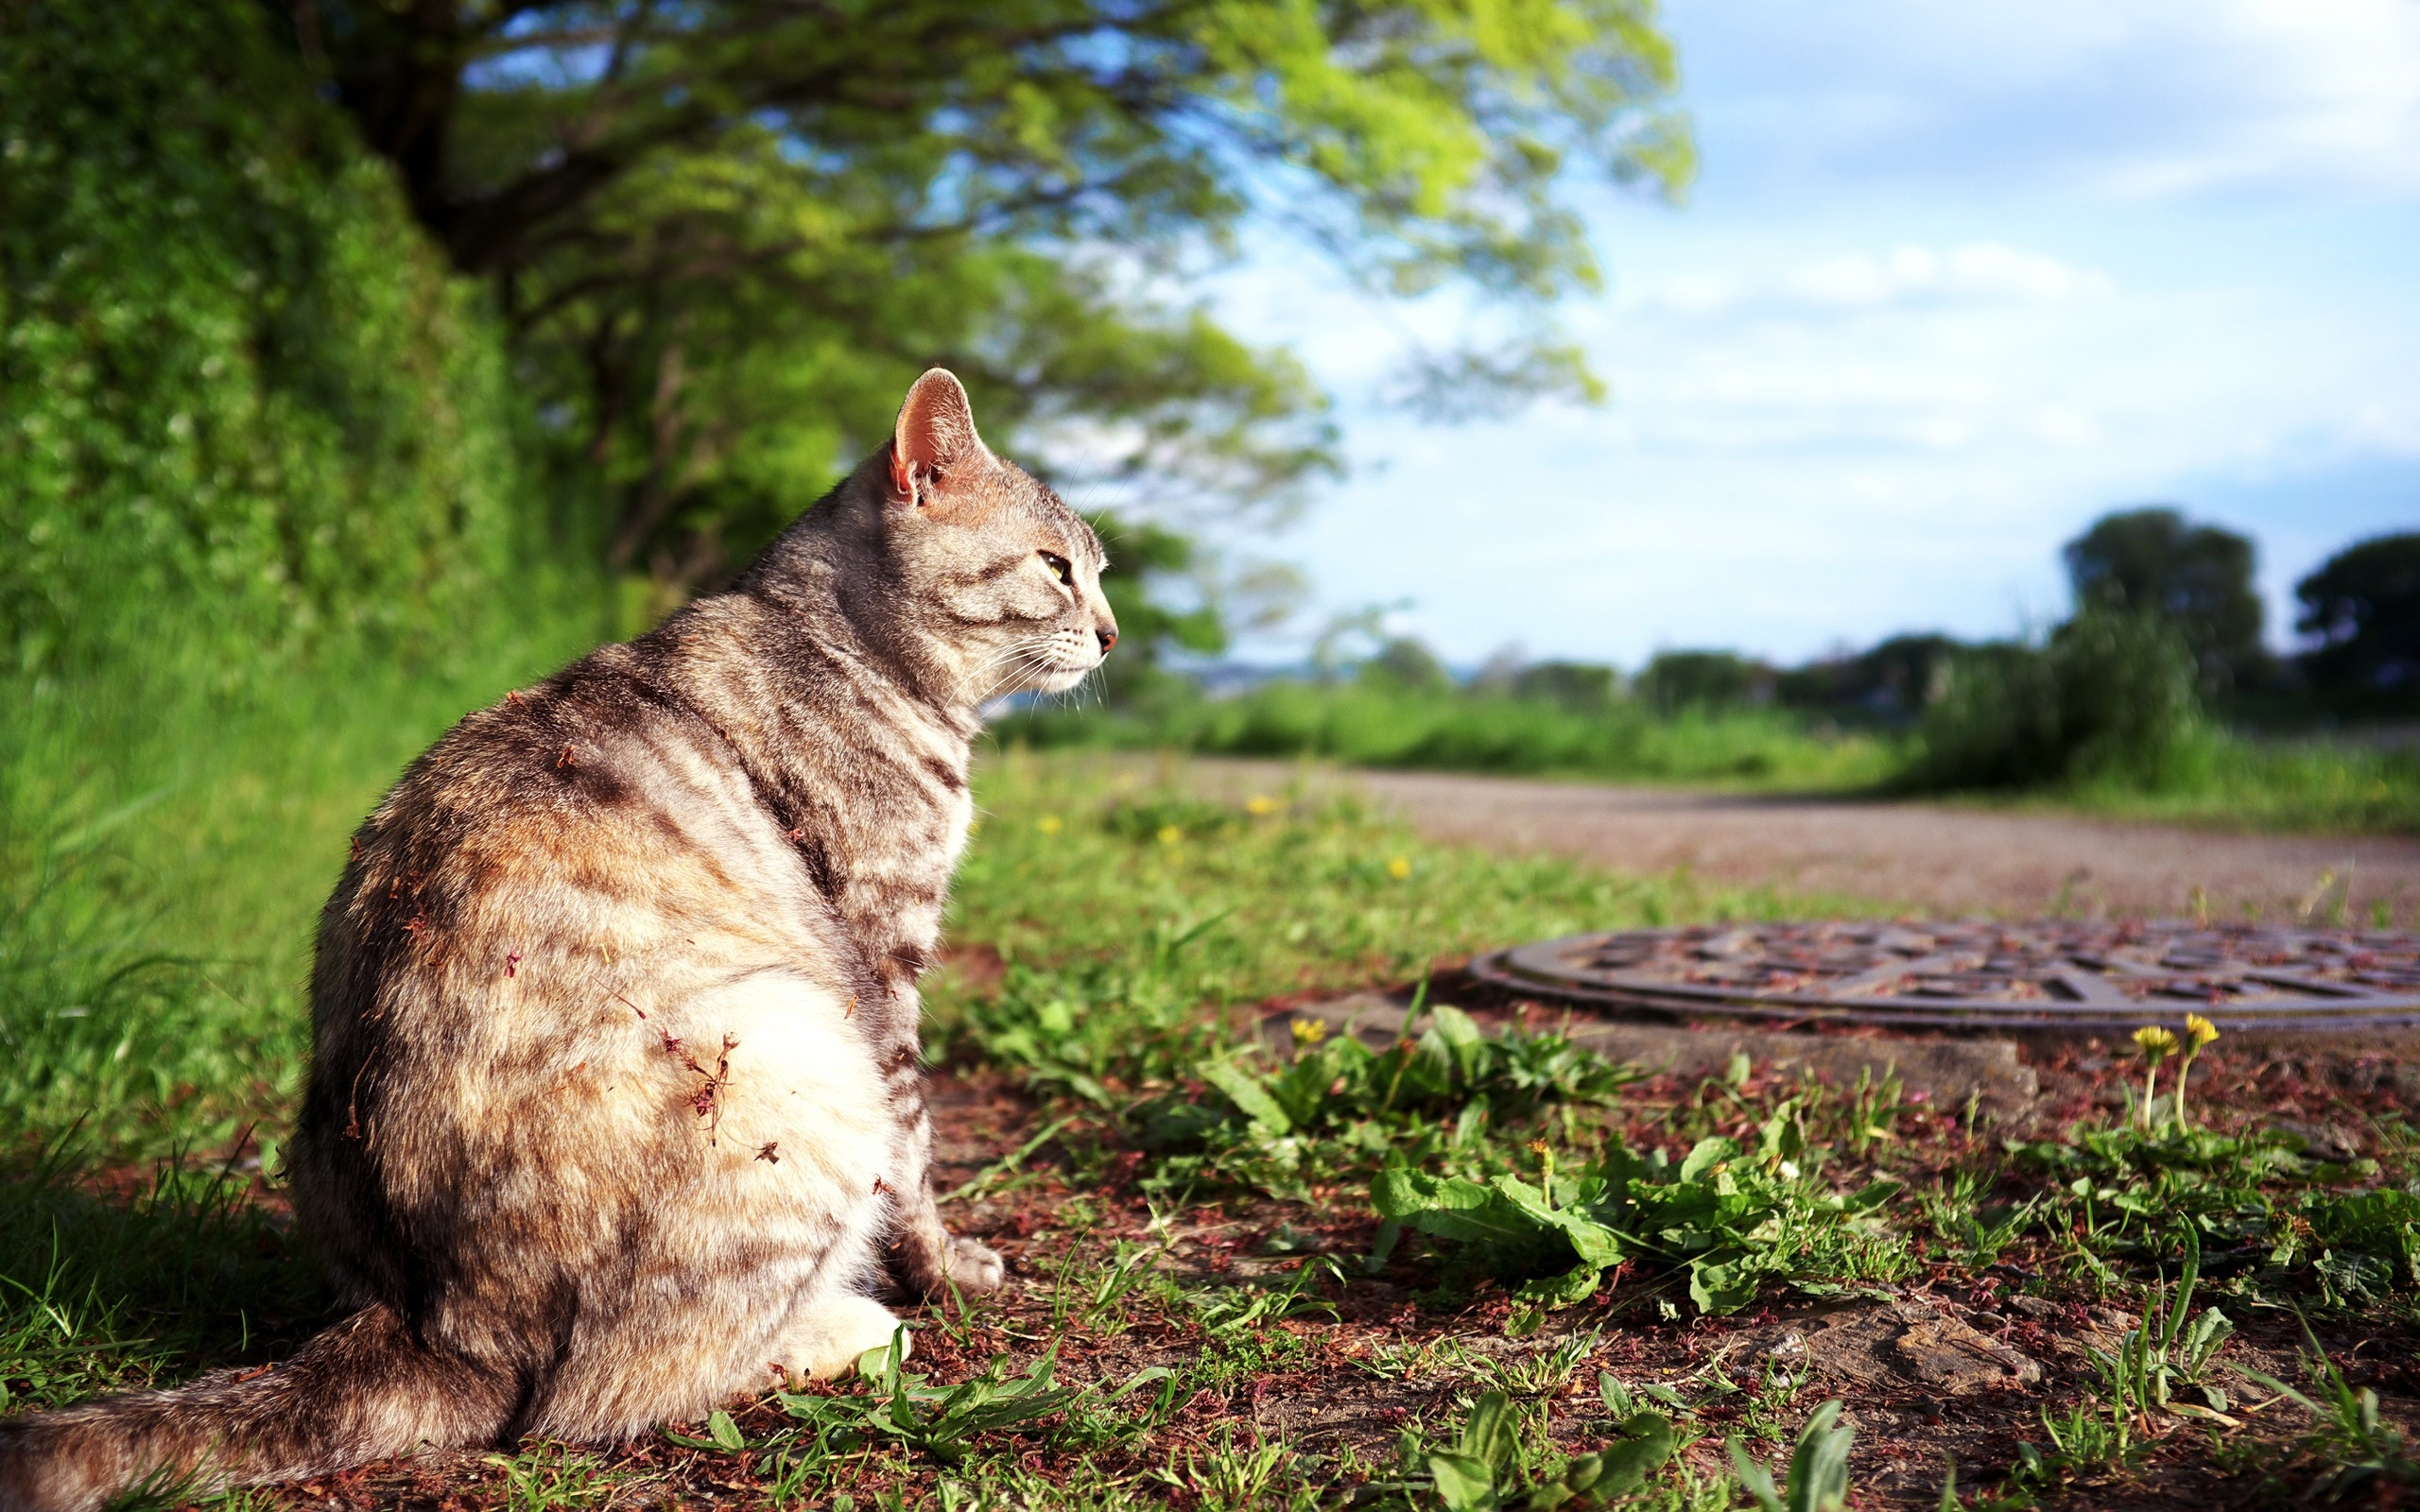 50171 download wallpaper Animals, Cats screensavers and pictures for free